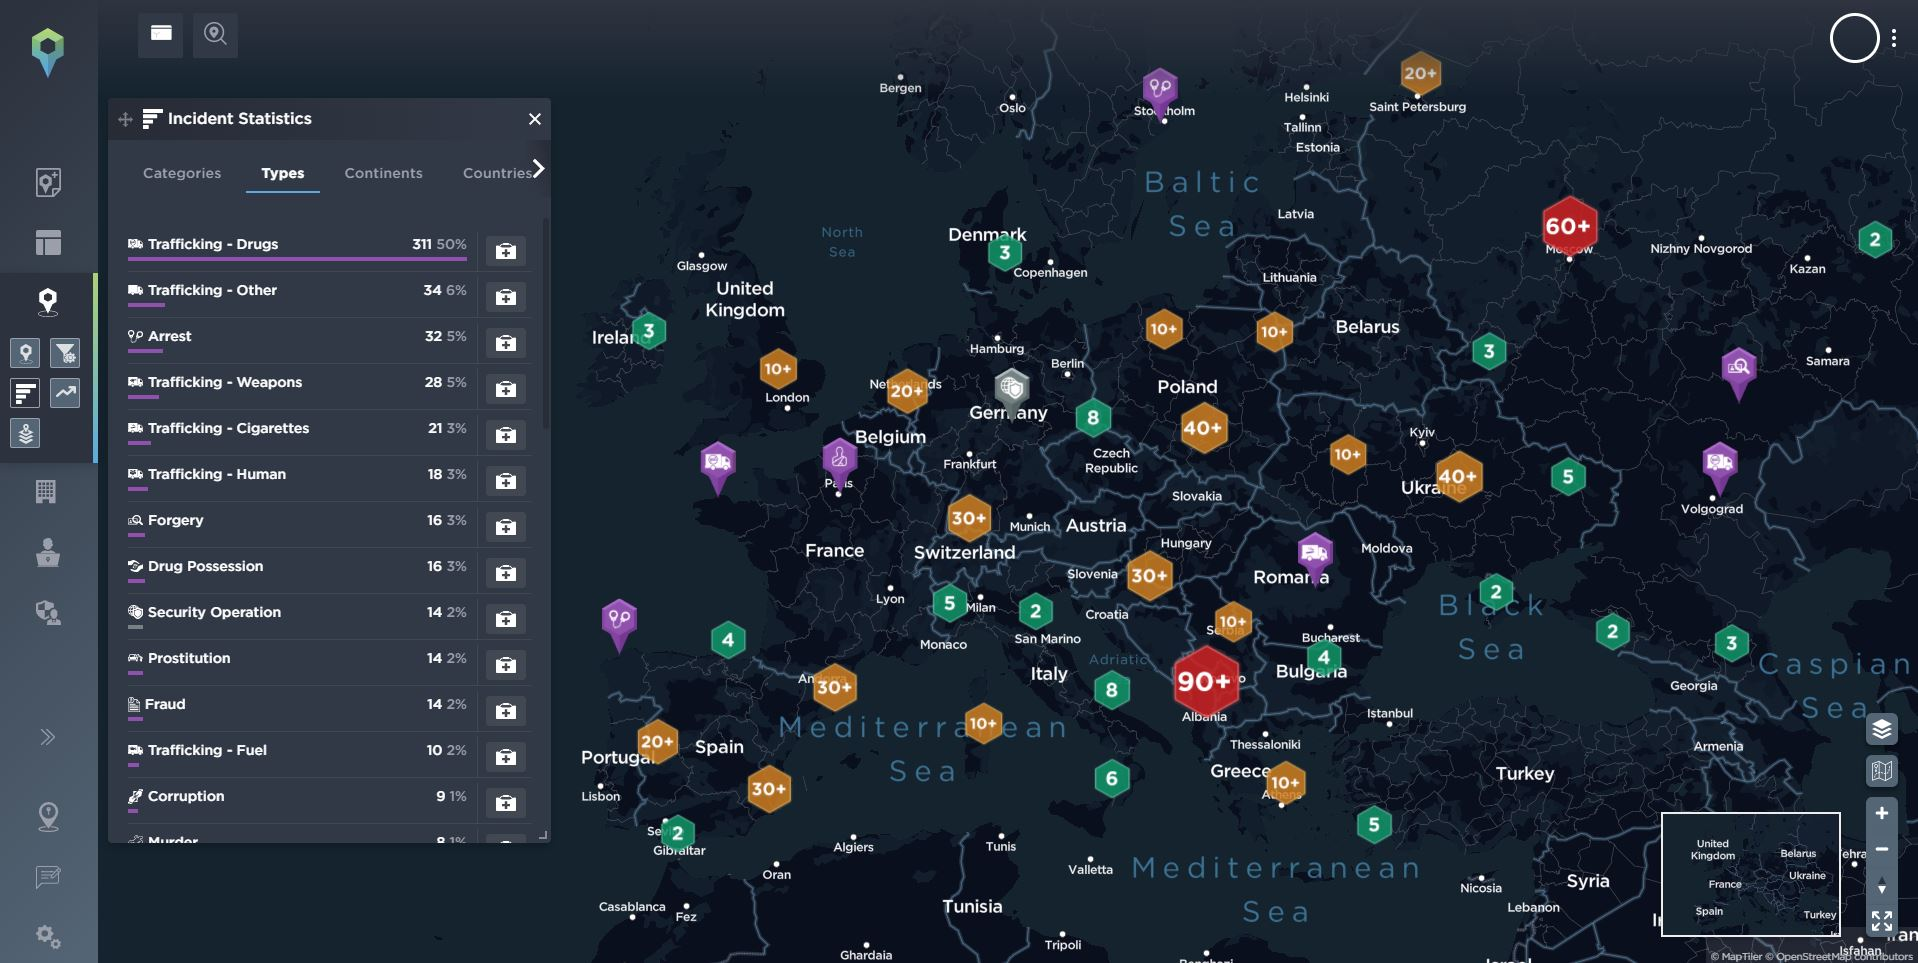 Overview of organised crime related incidents across Europe in 2021